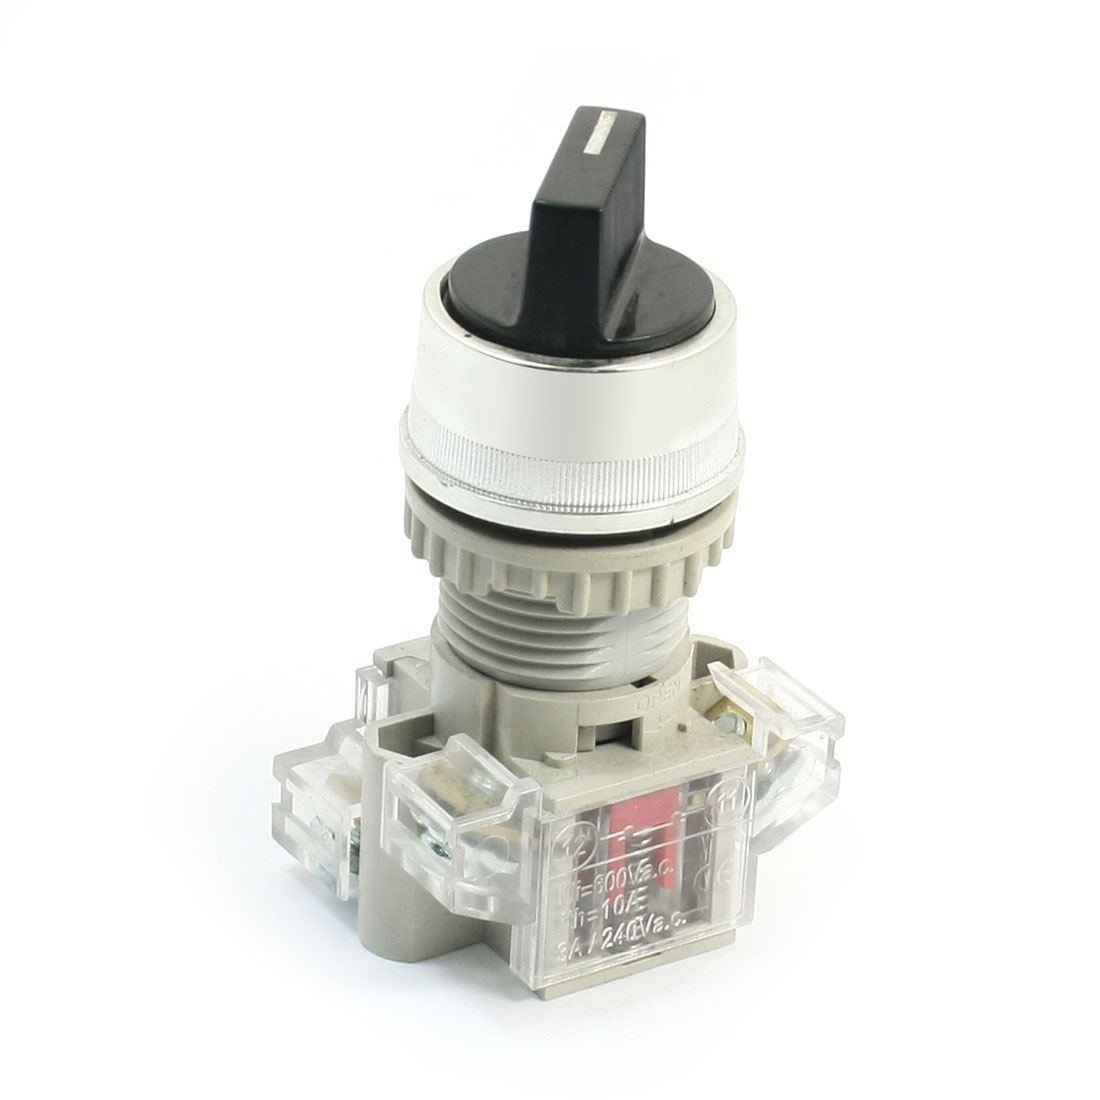 AC 240V 3A 1NO+NC 4 Screw Terminal 2 Position Selector Locking Rotary Switch